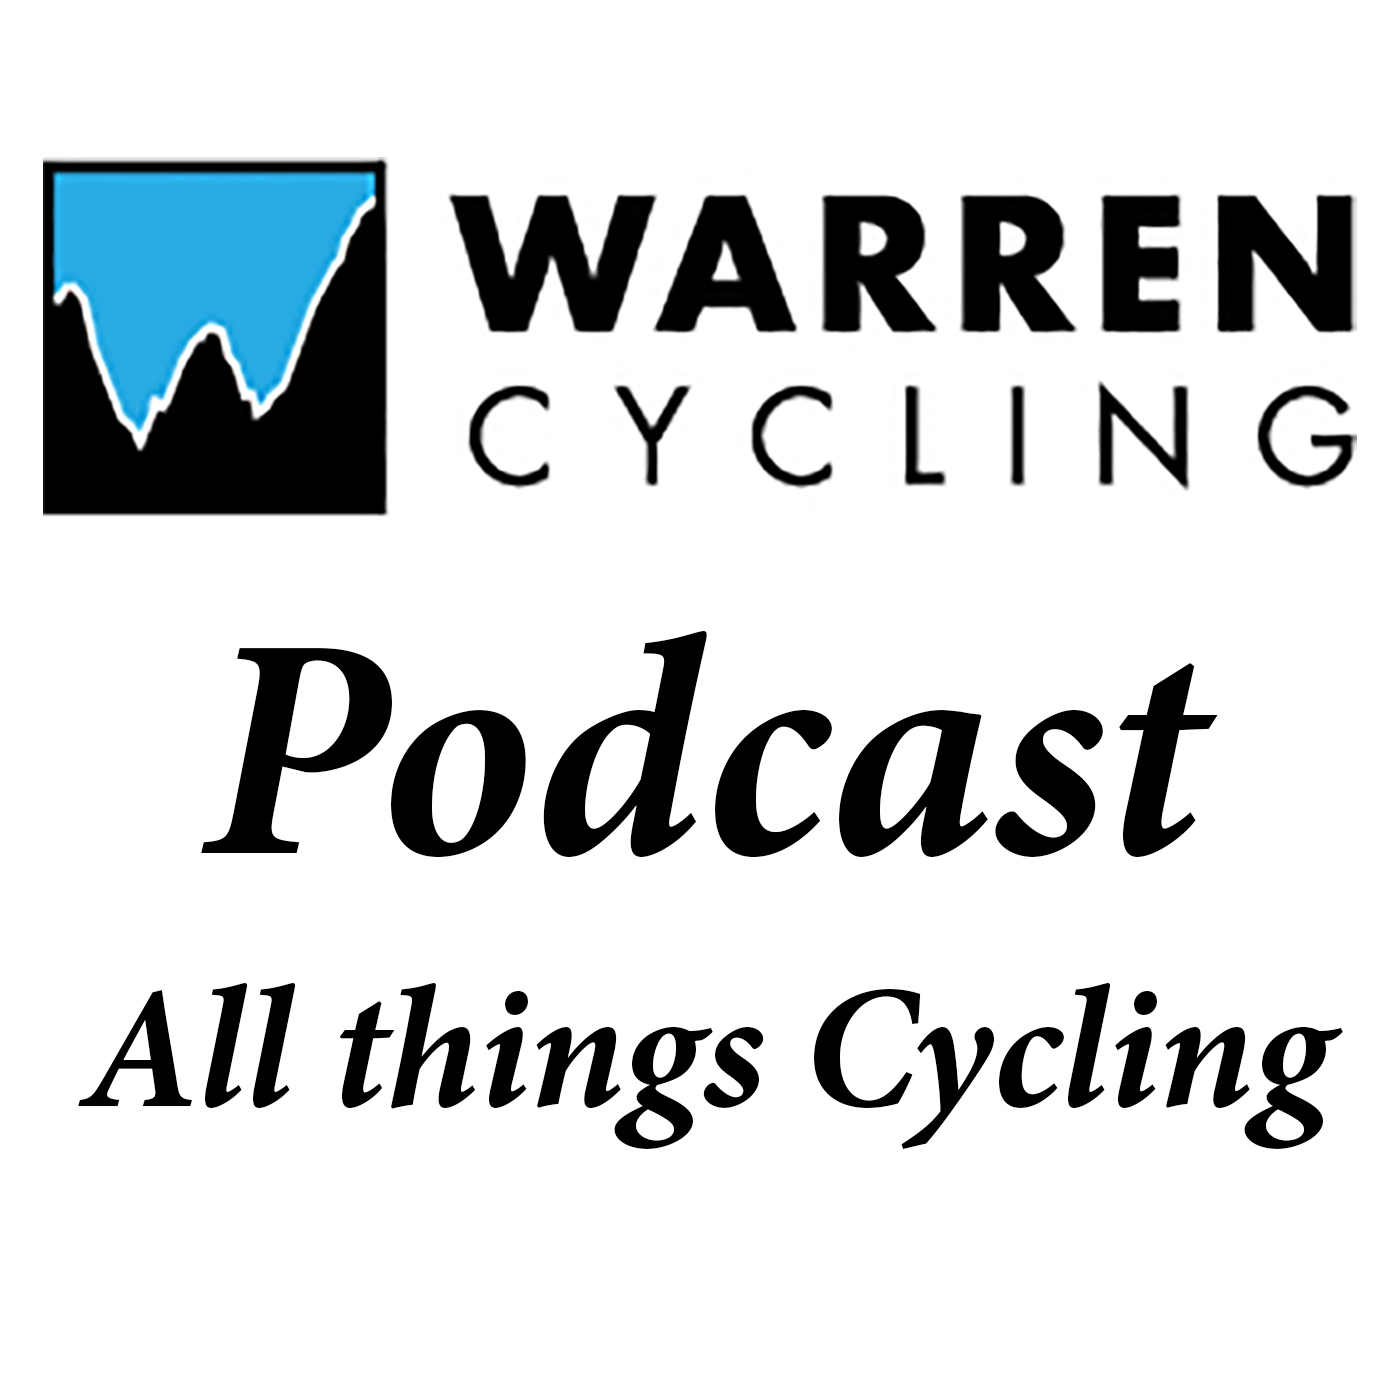 Warren Cycling Podcast Episode 242: Strade Bianche Analysis show art